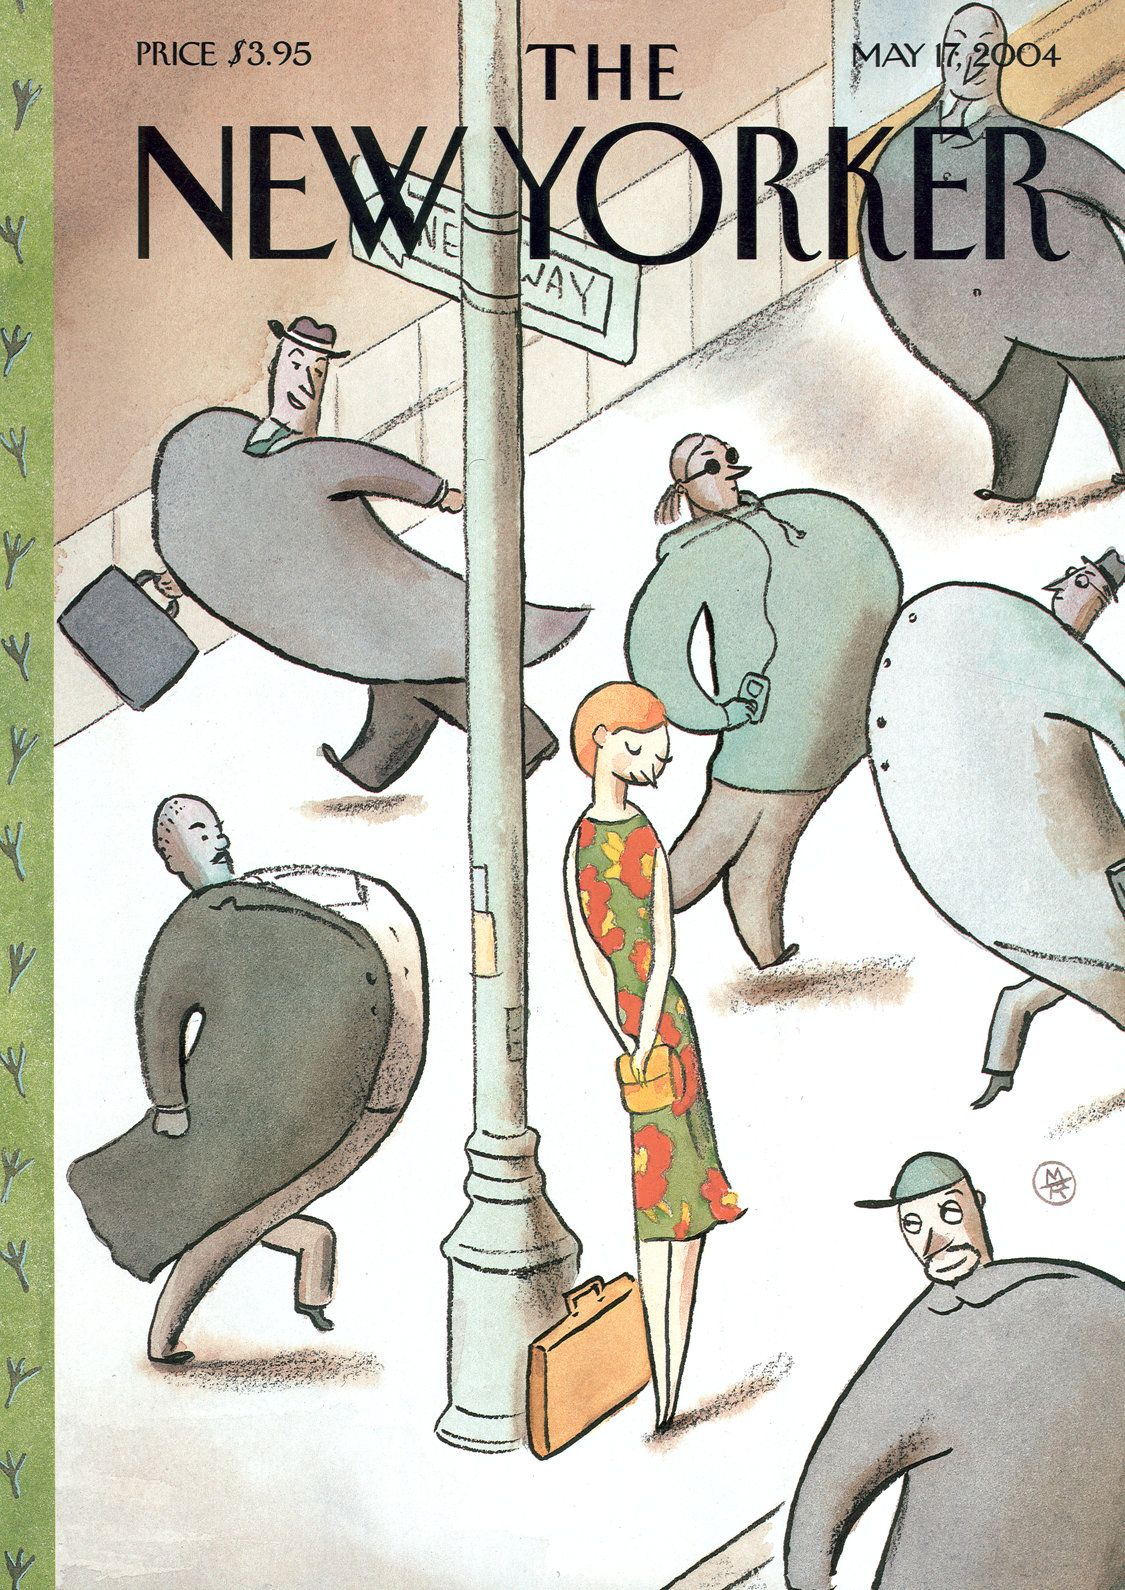 """The New Yorker - Monday, May 17, 2004 - Issue # 4075 - Vol. 80 - N° 12 - Cover """"Spring Ritual"""" by Marc Rosenthal"""